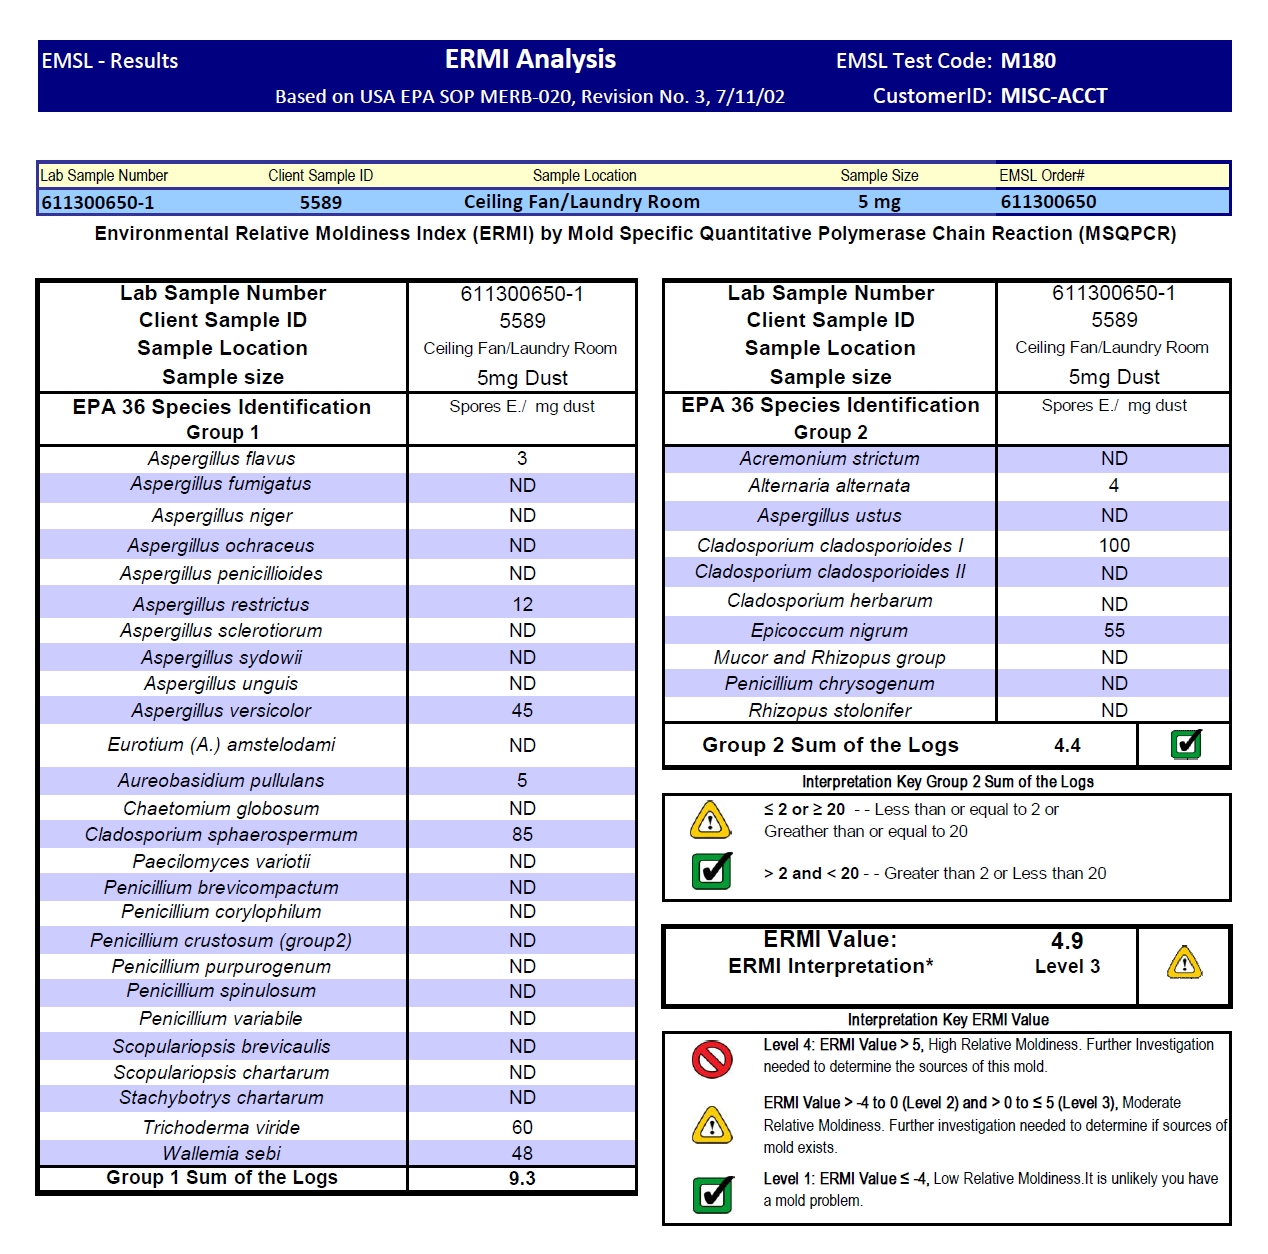 moms AWARE - How to Interpret ERMI or HERTSMI Mold Test Results